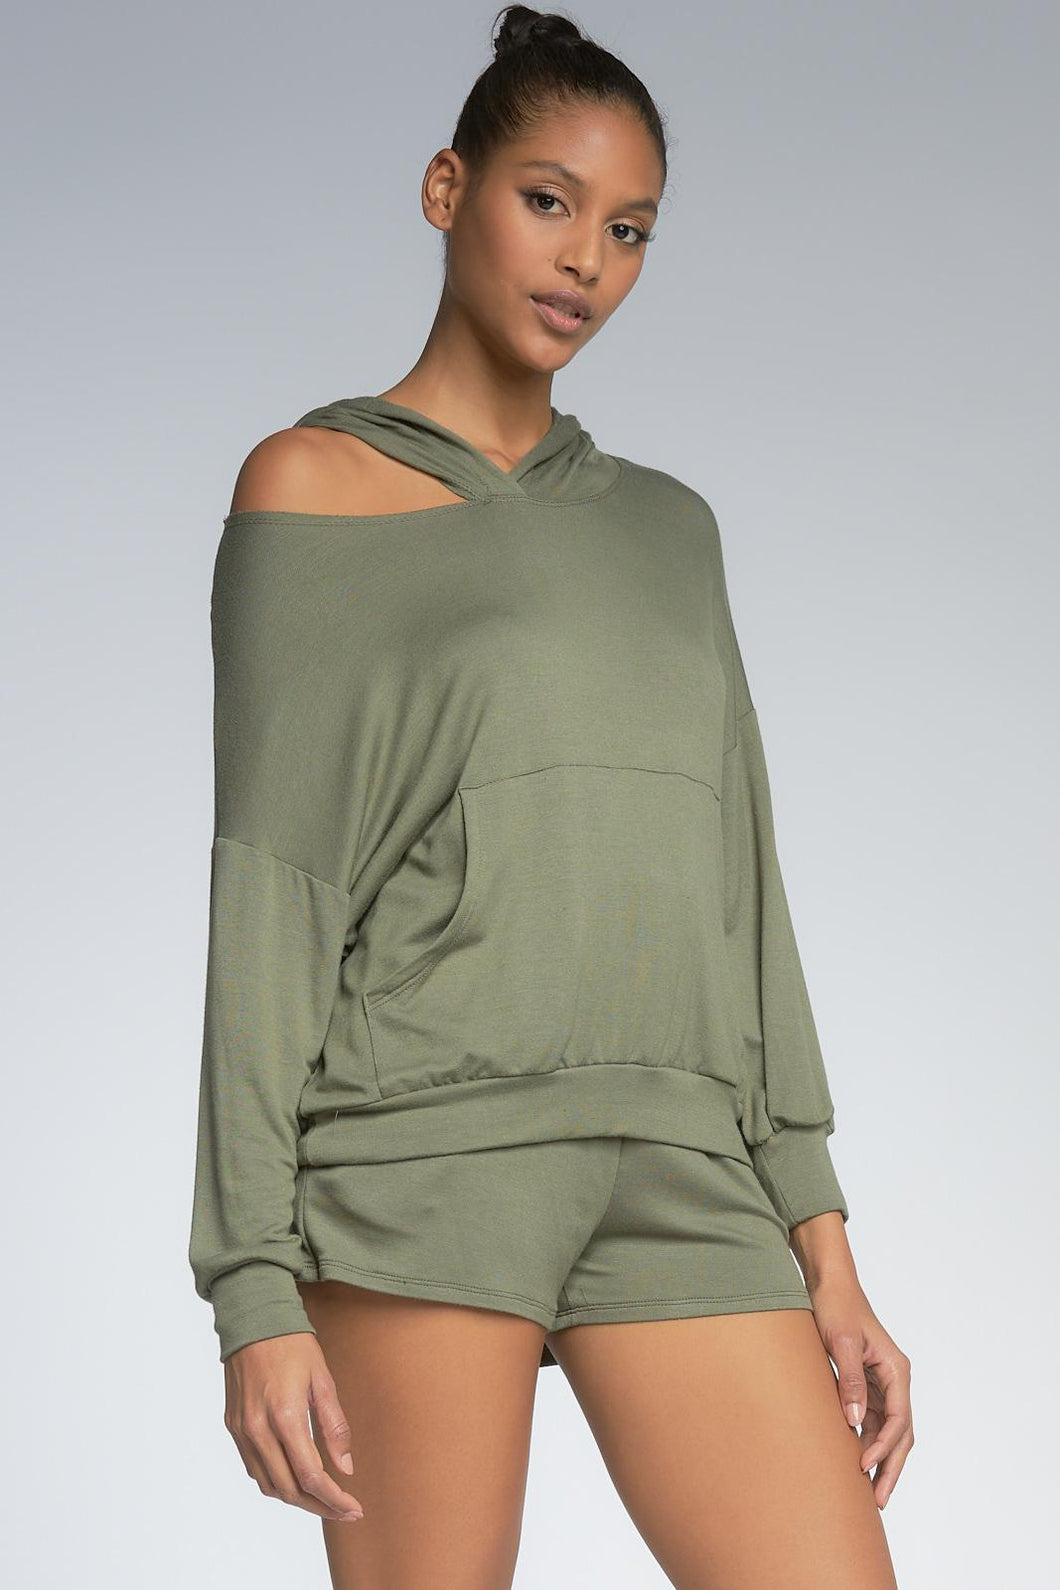 One Shoulder Top in Olive Green with Hood